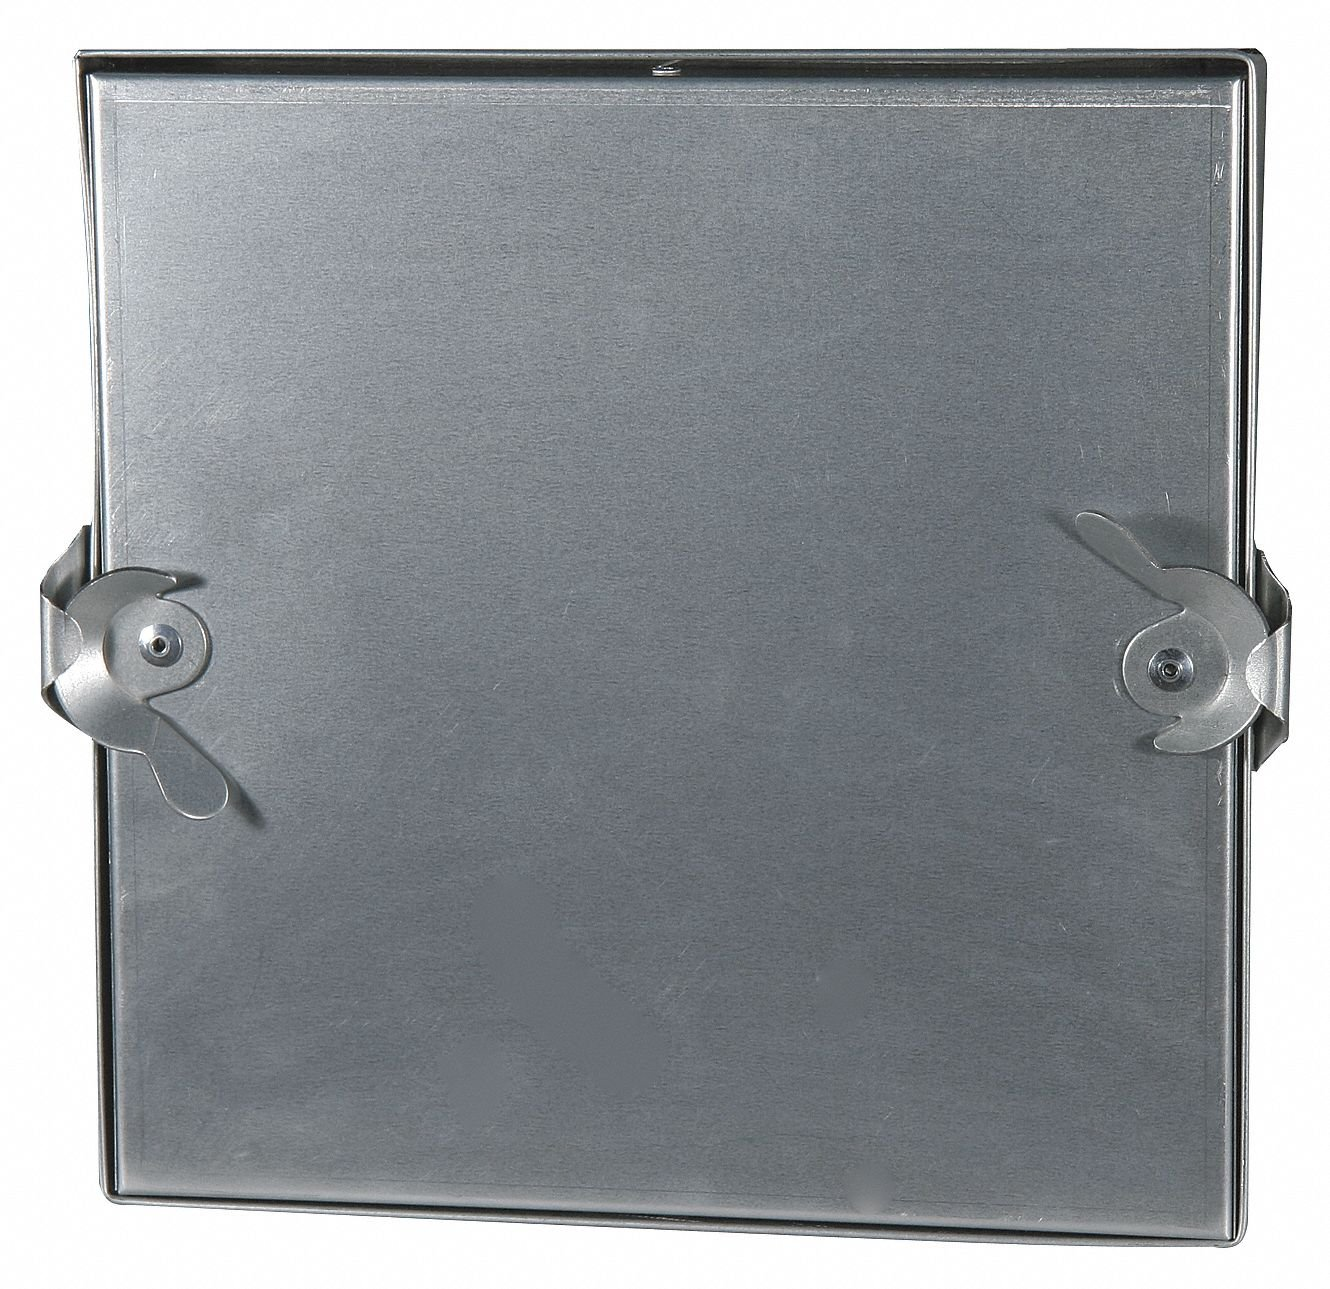 Insulated Access Door, 12 In, Square, Steel by CAI - DAYTON